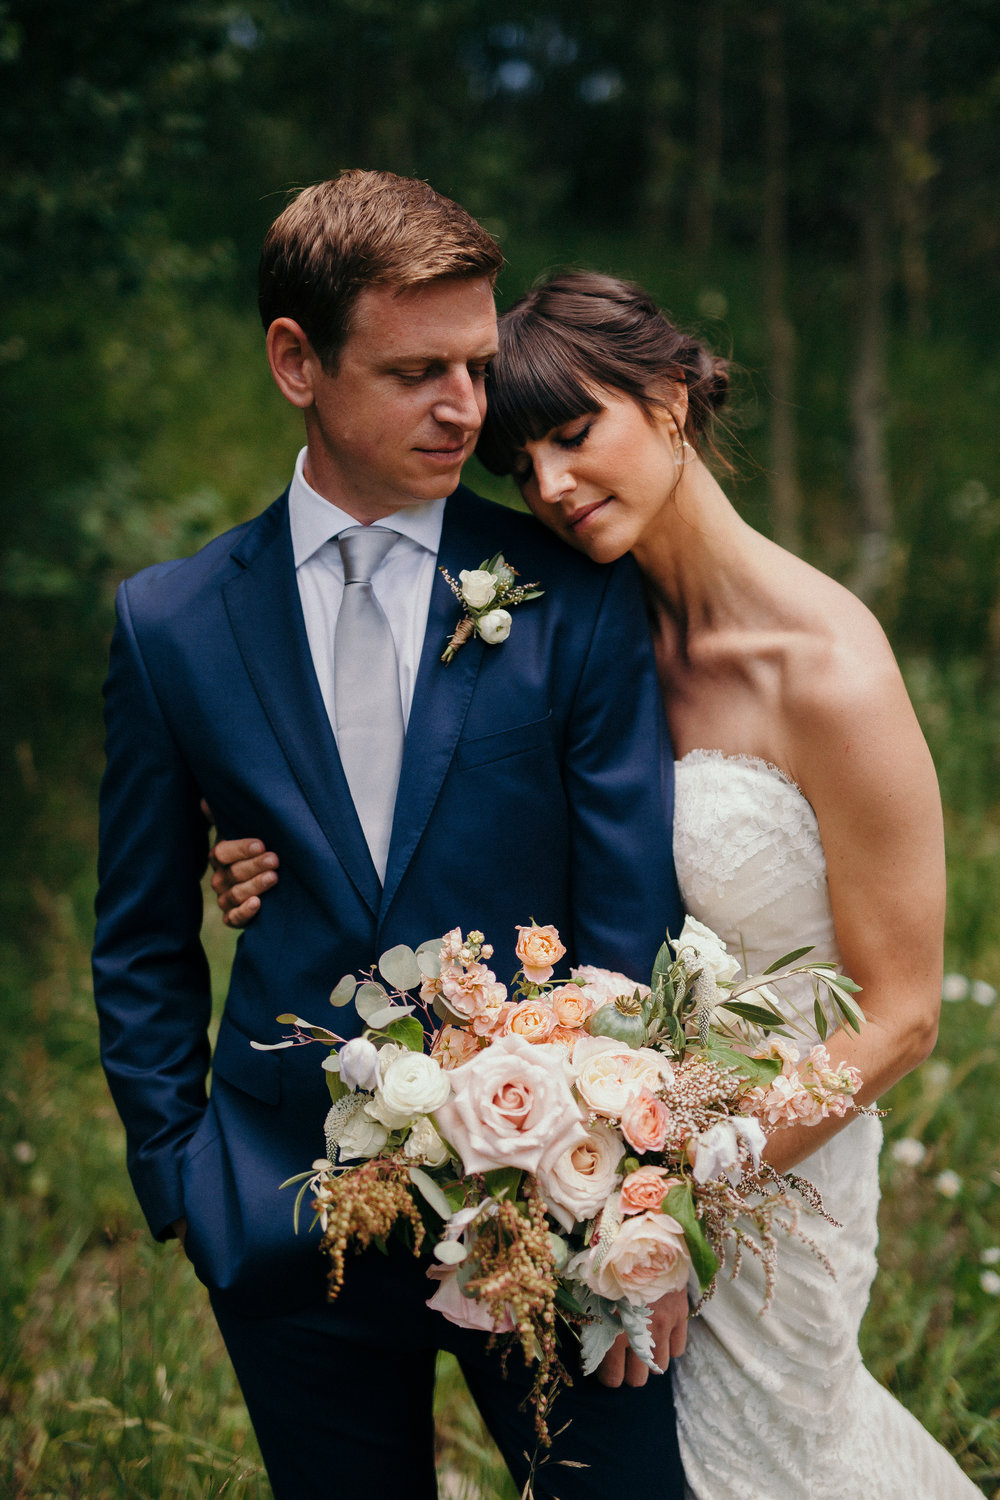 Flowers by Lace and Lilies, aspen mountain wedding, textured white and blush flowers - bridal bouquet and boutonniere. Grooms blue suit